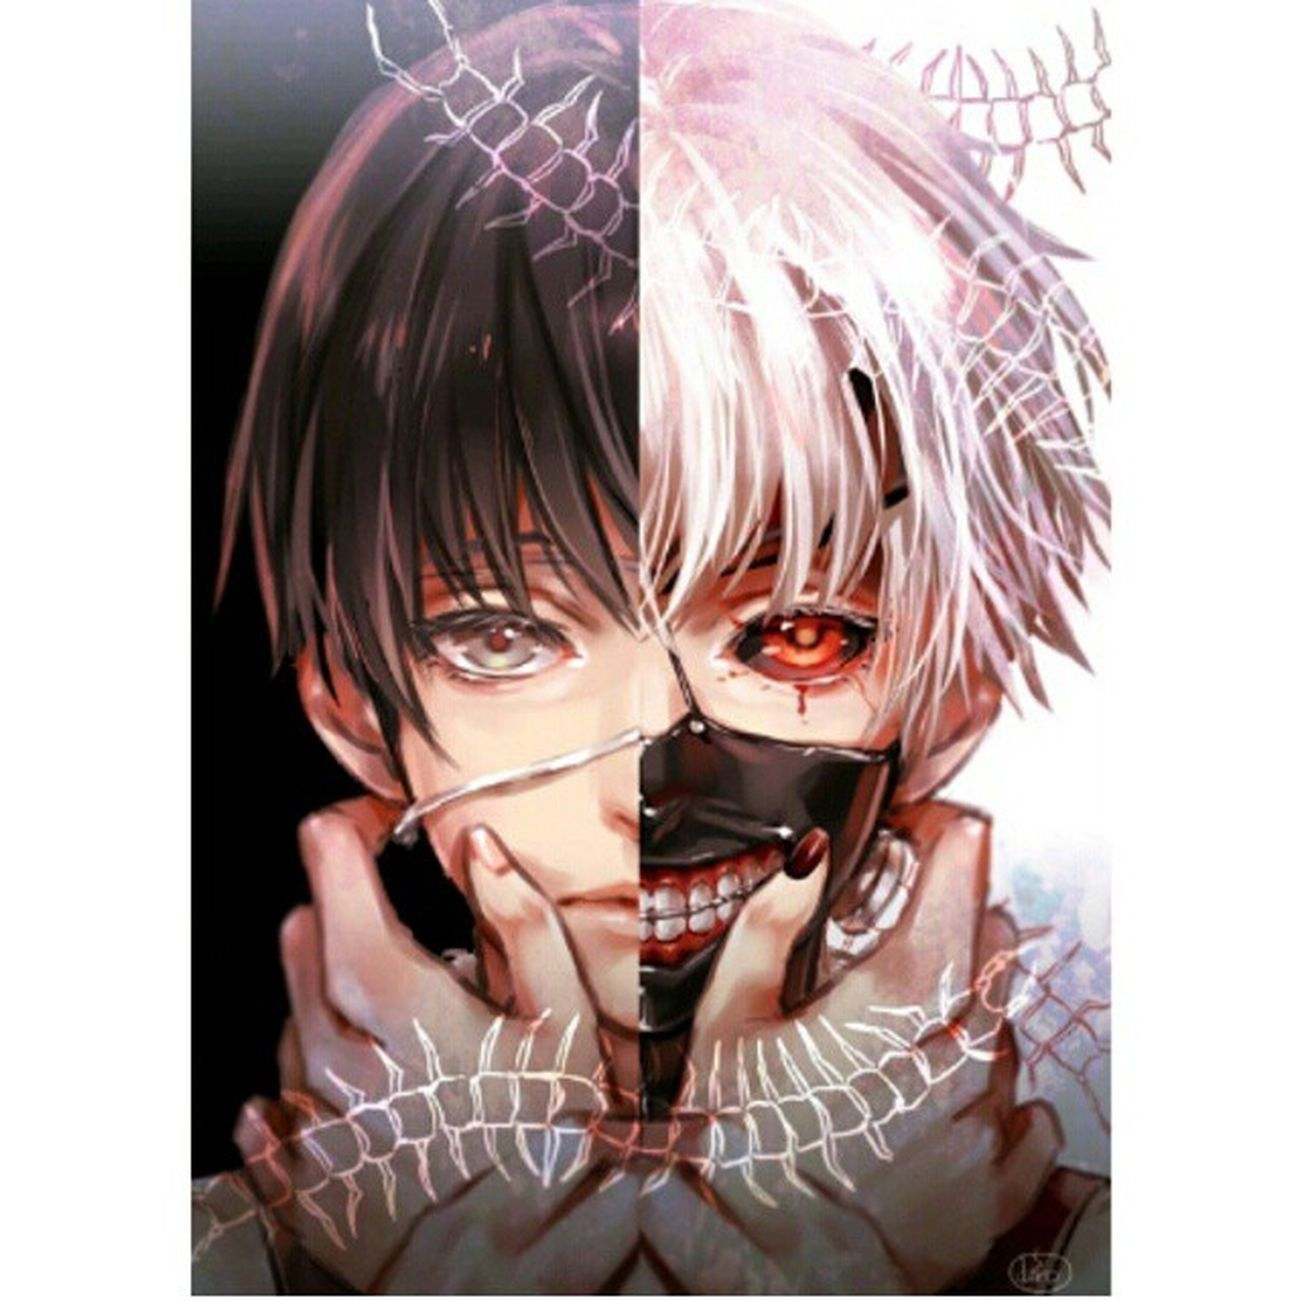 I'm gonna read the manga after the anime is done. Manga Kanekiken Tokyoghoul